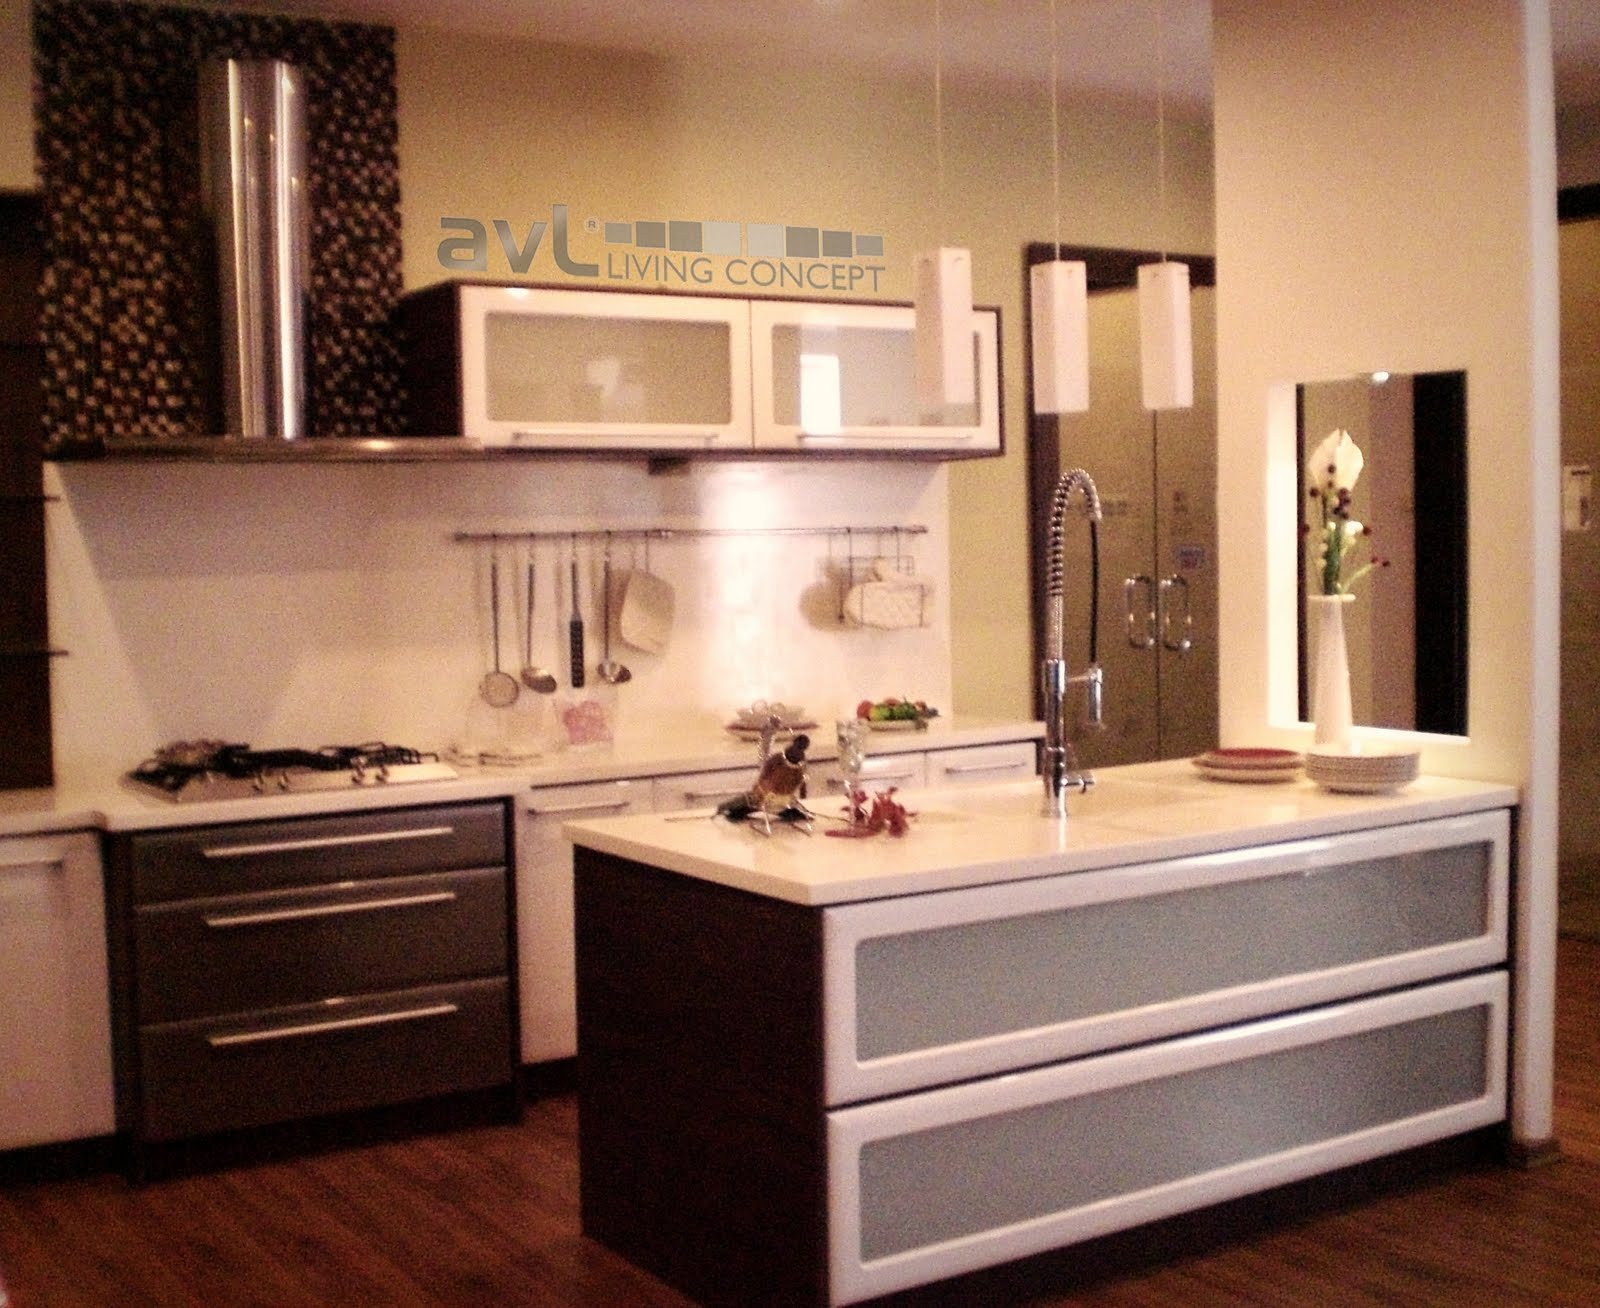 specialist in cabinetry carpentry home furnishing and interior design